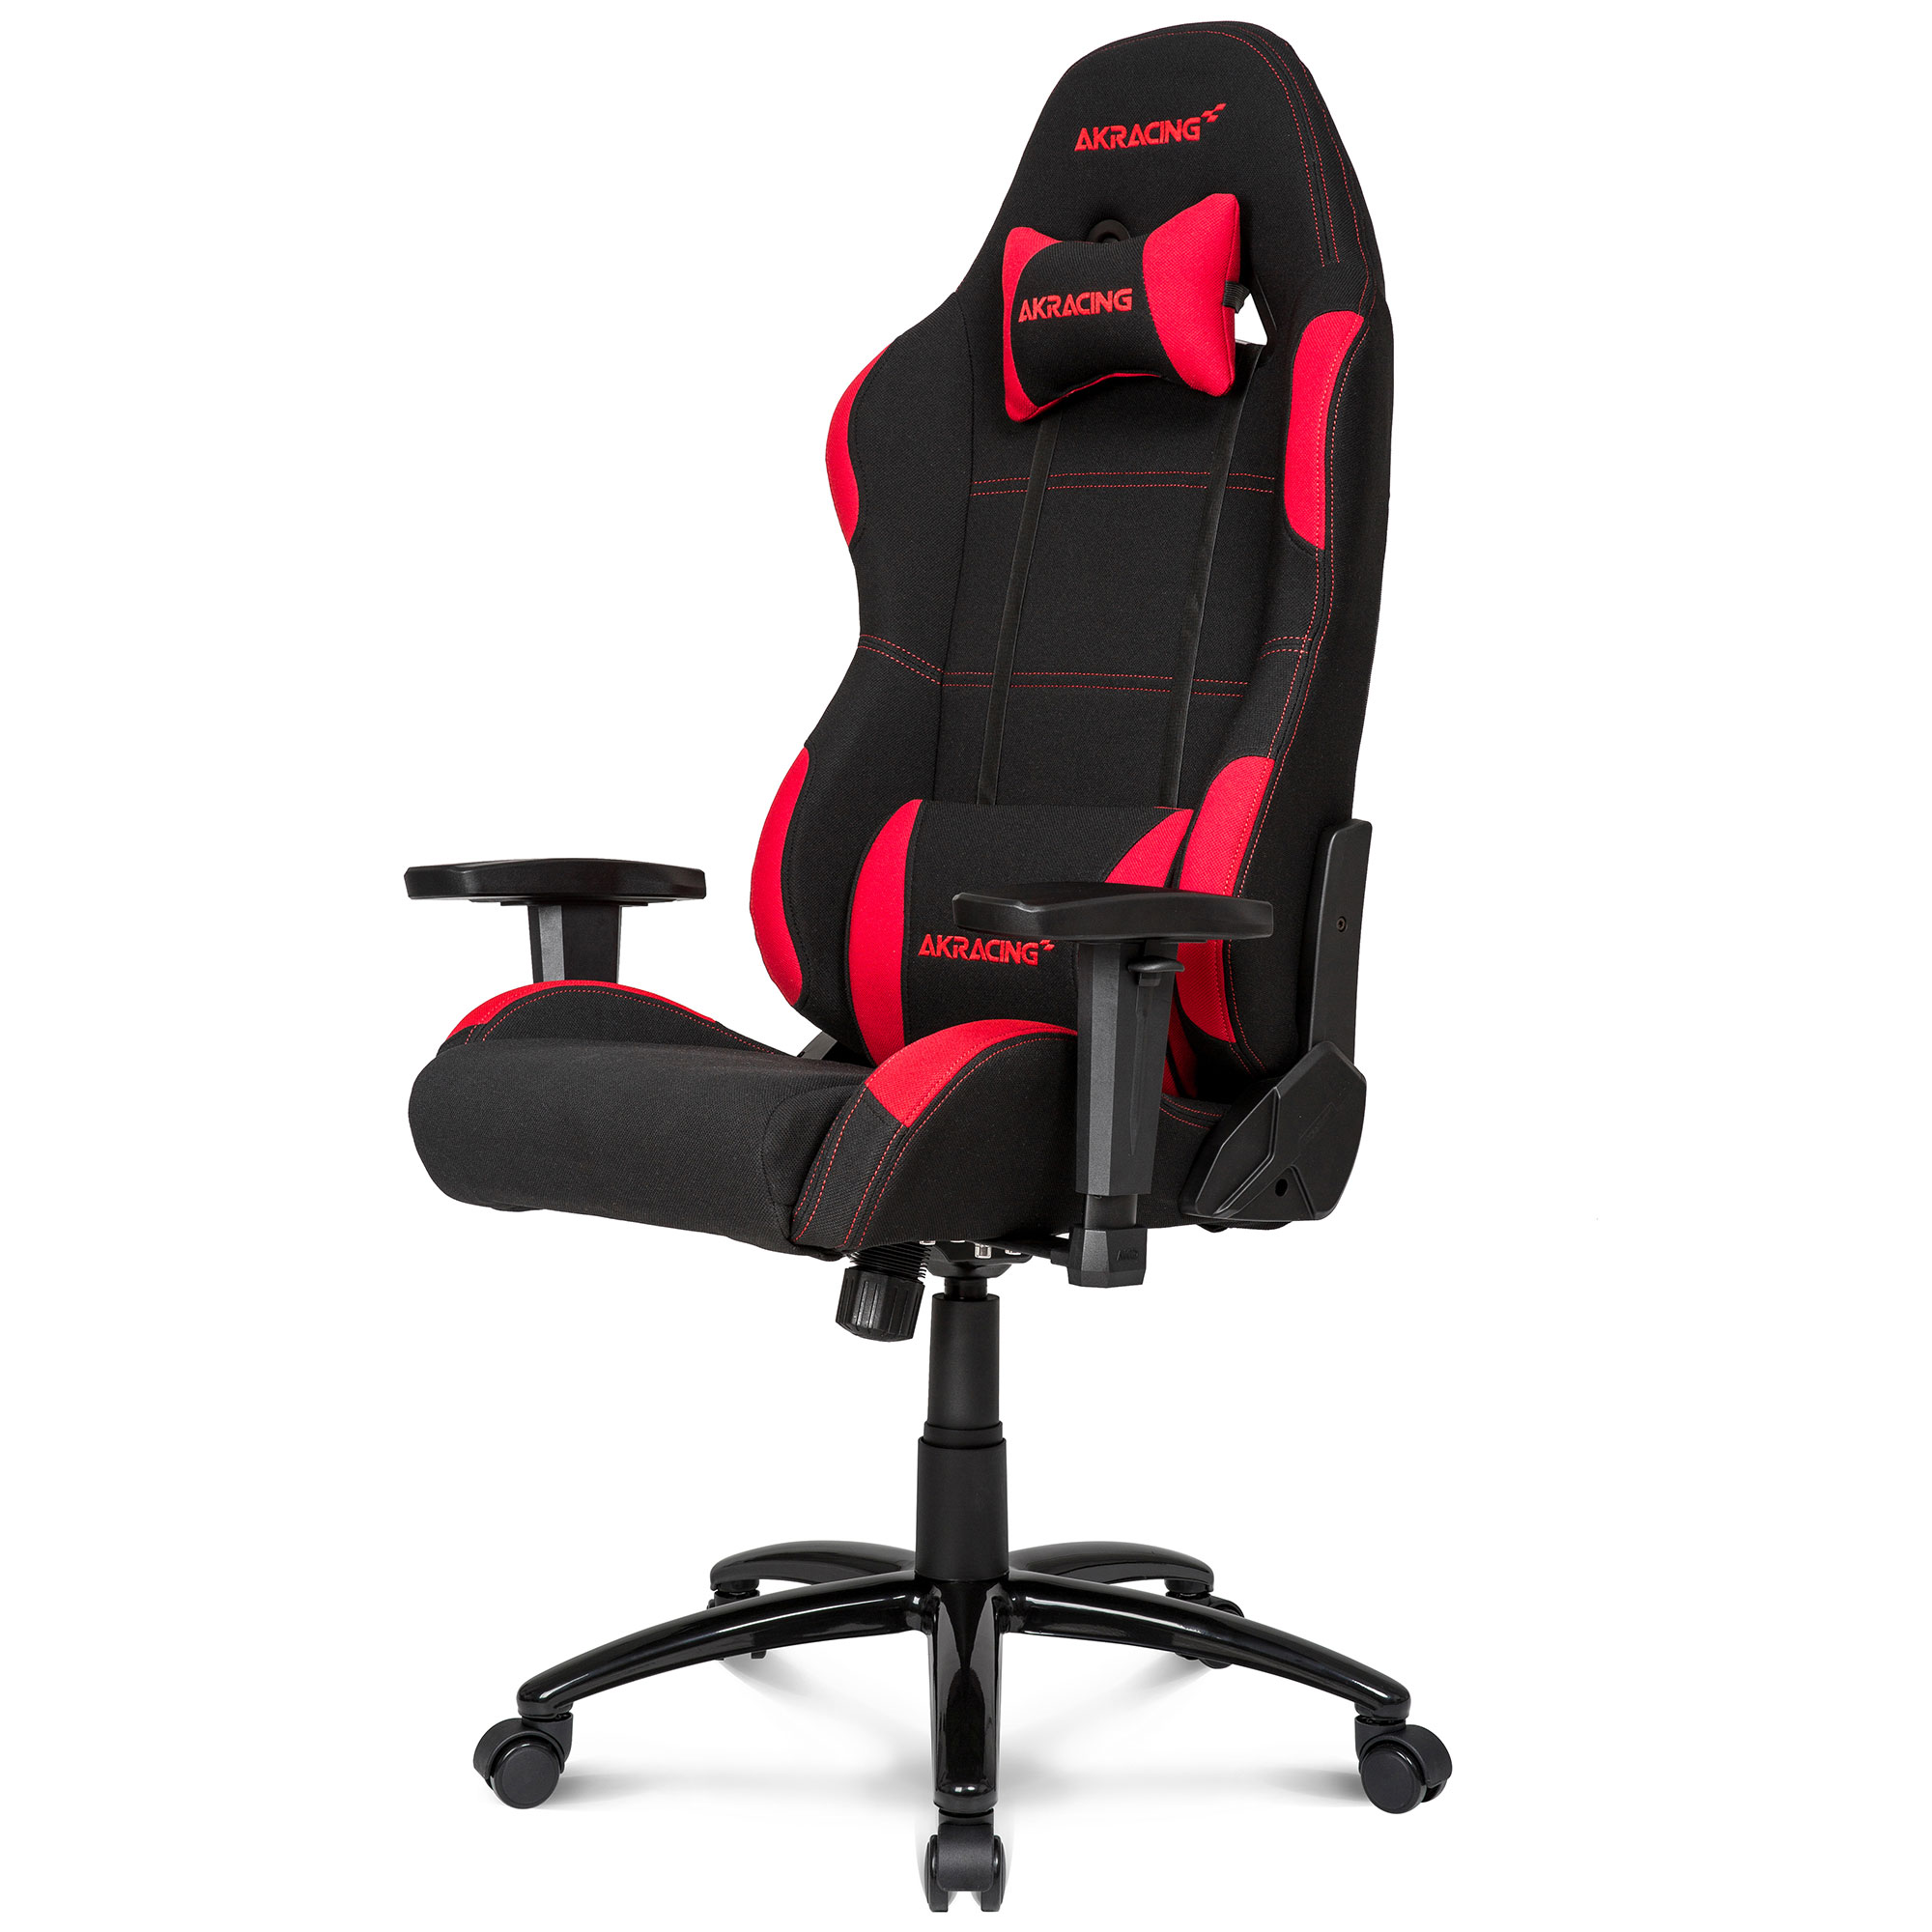 akracing gaming chair rouge fauteuil gamer akracing sur. Black Bedroom Furniture Sets. Home Design Ideas